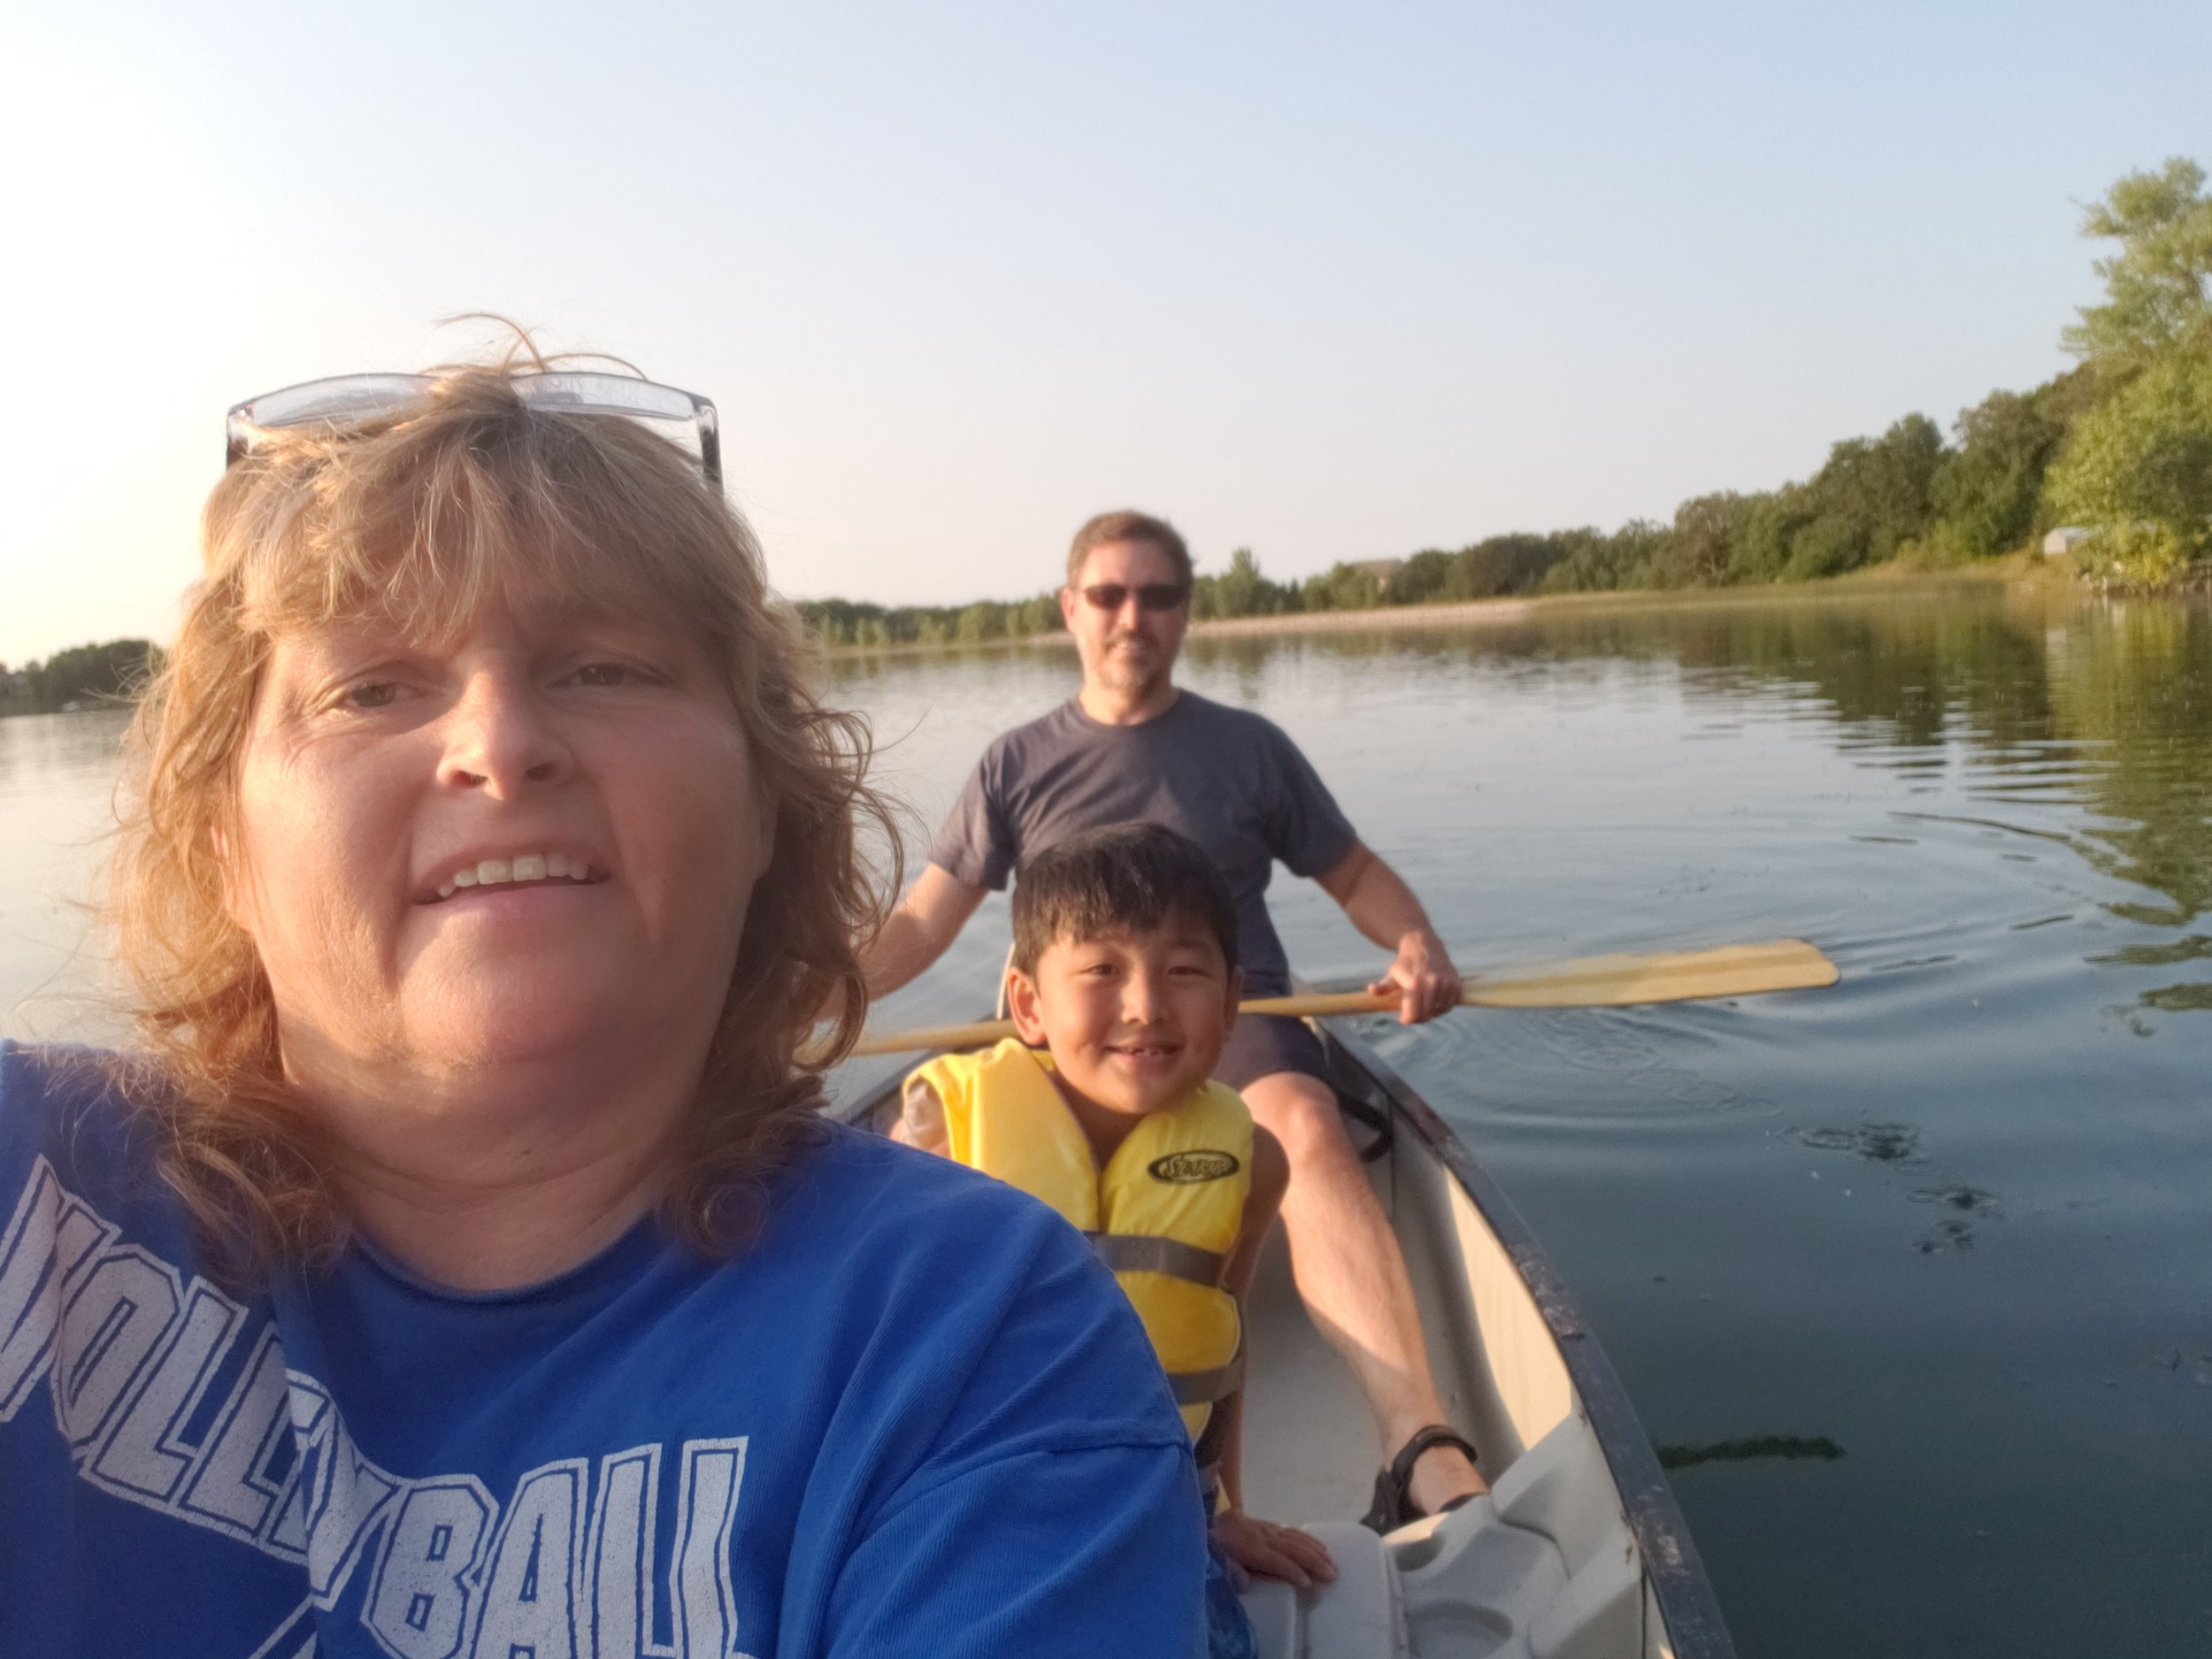 Todd takes up the back of the canoe as the rest of his family enjoys this summer lake adventure.